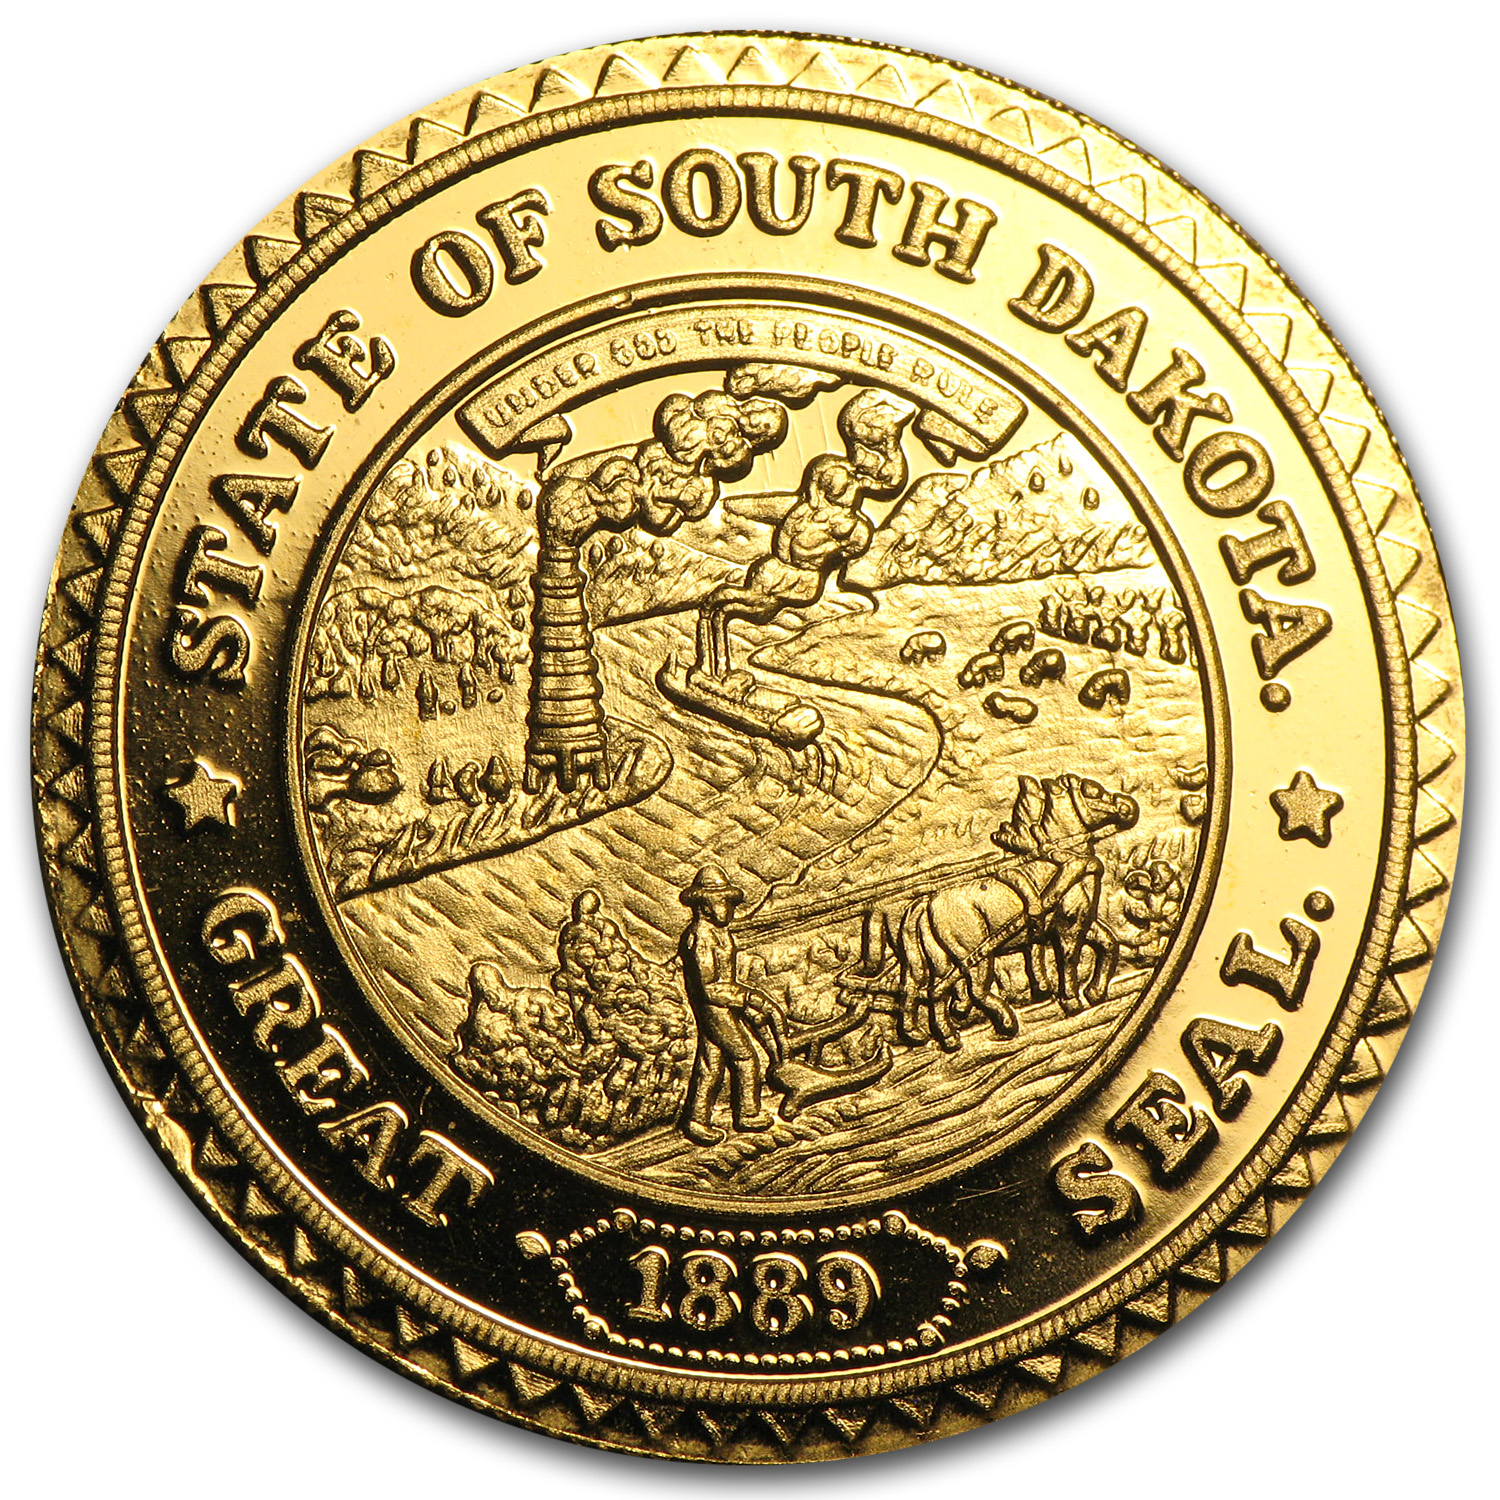 1/2 oz Gold Rounds - The Great Seal of South Dakota